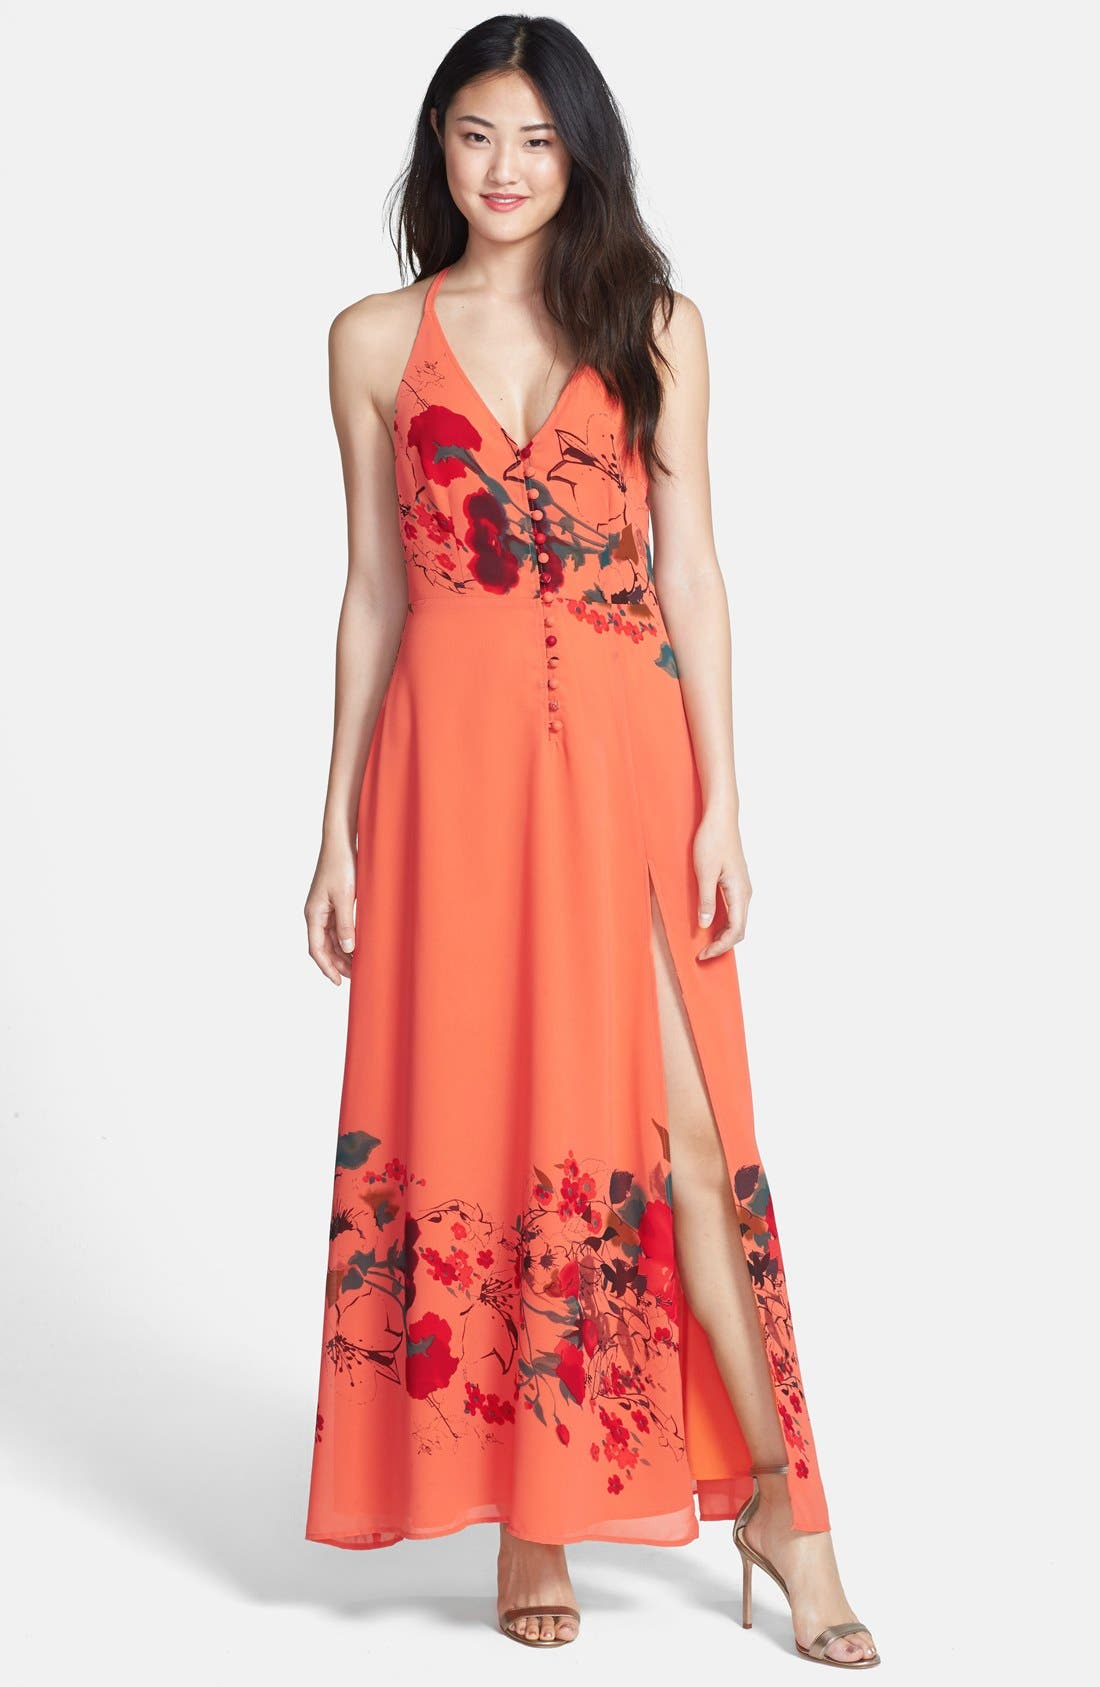 Alternate Image 1 Selected - Jarlo 'Adora' Crochet T-Back Print Chiffon Maxi Dress